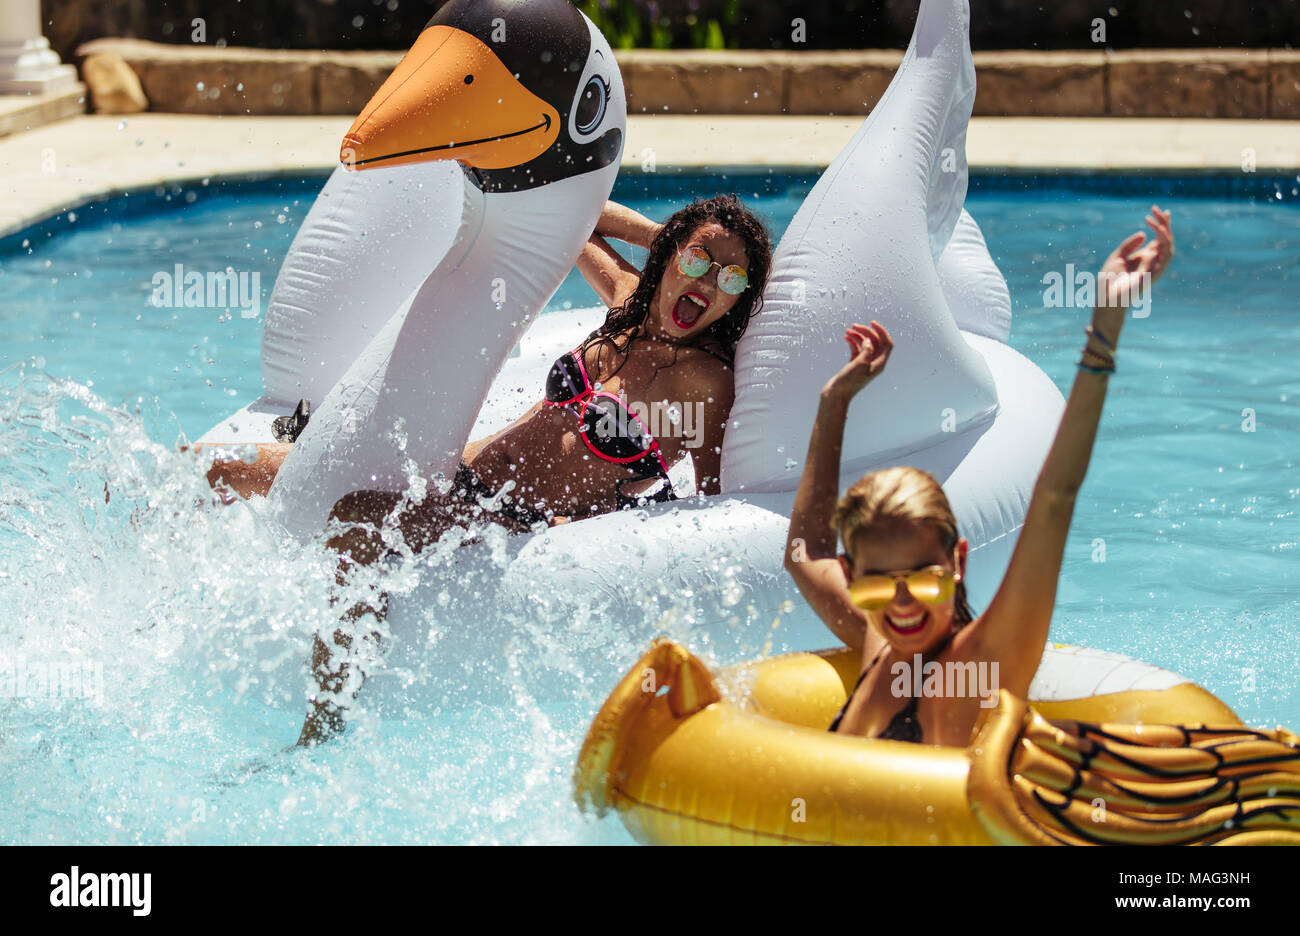 Women swimming in pool with inflatable toys. Females friends enjoying in a pool on their summer vacation. Stock Photo